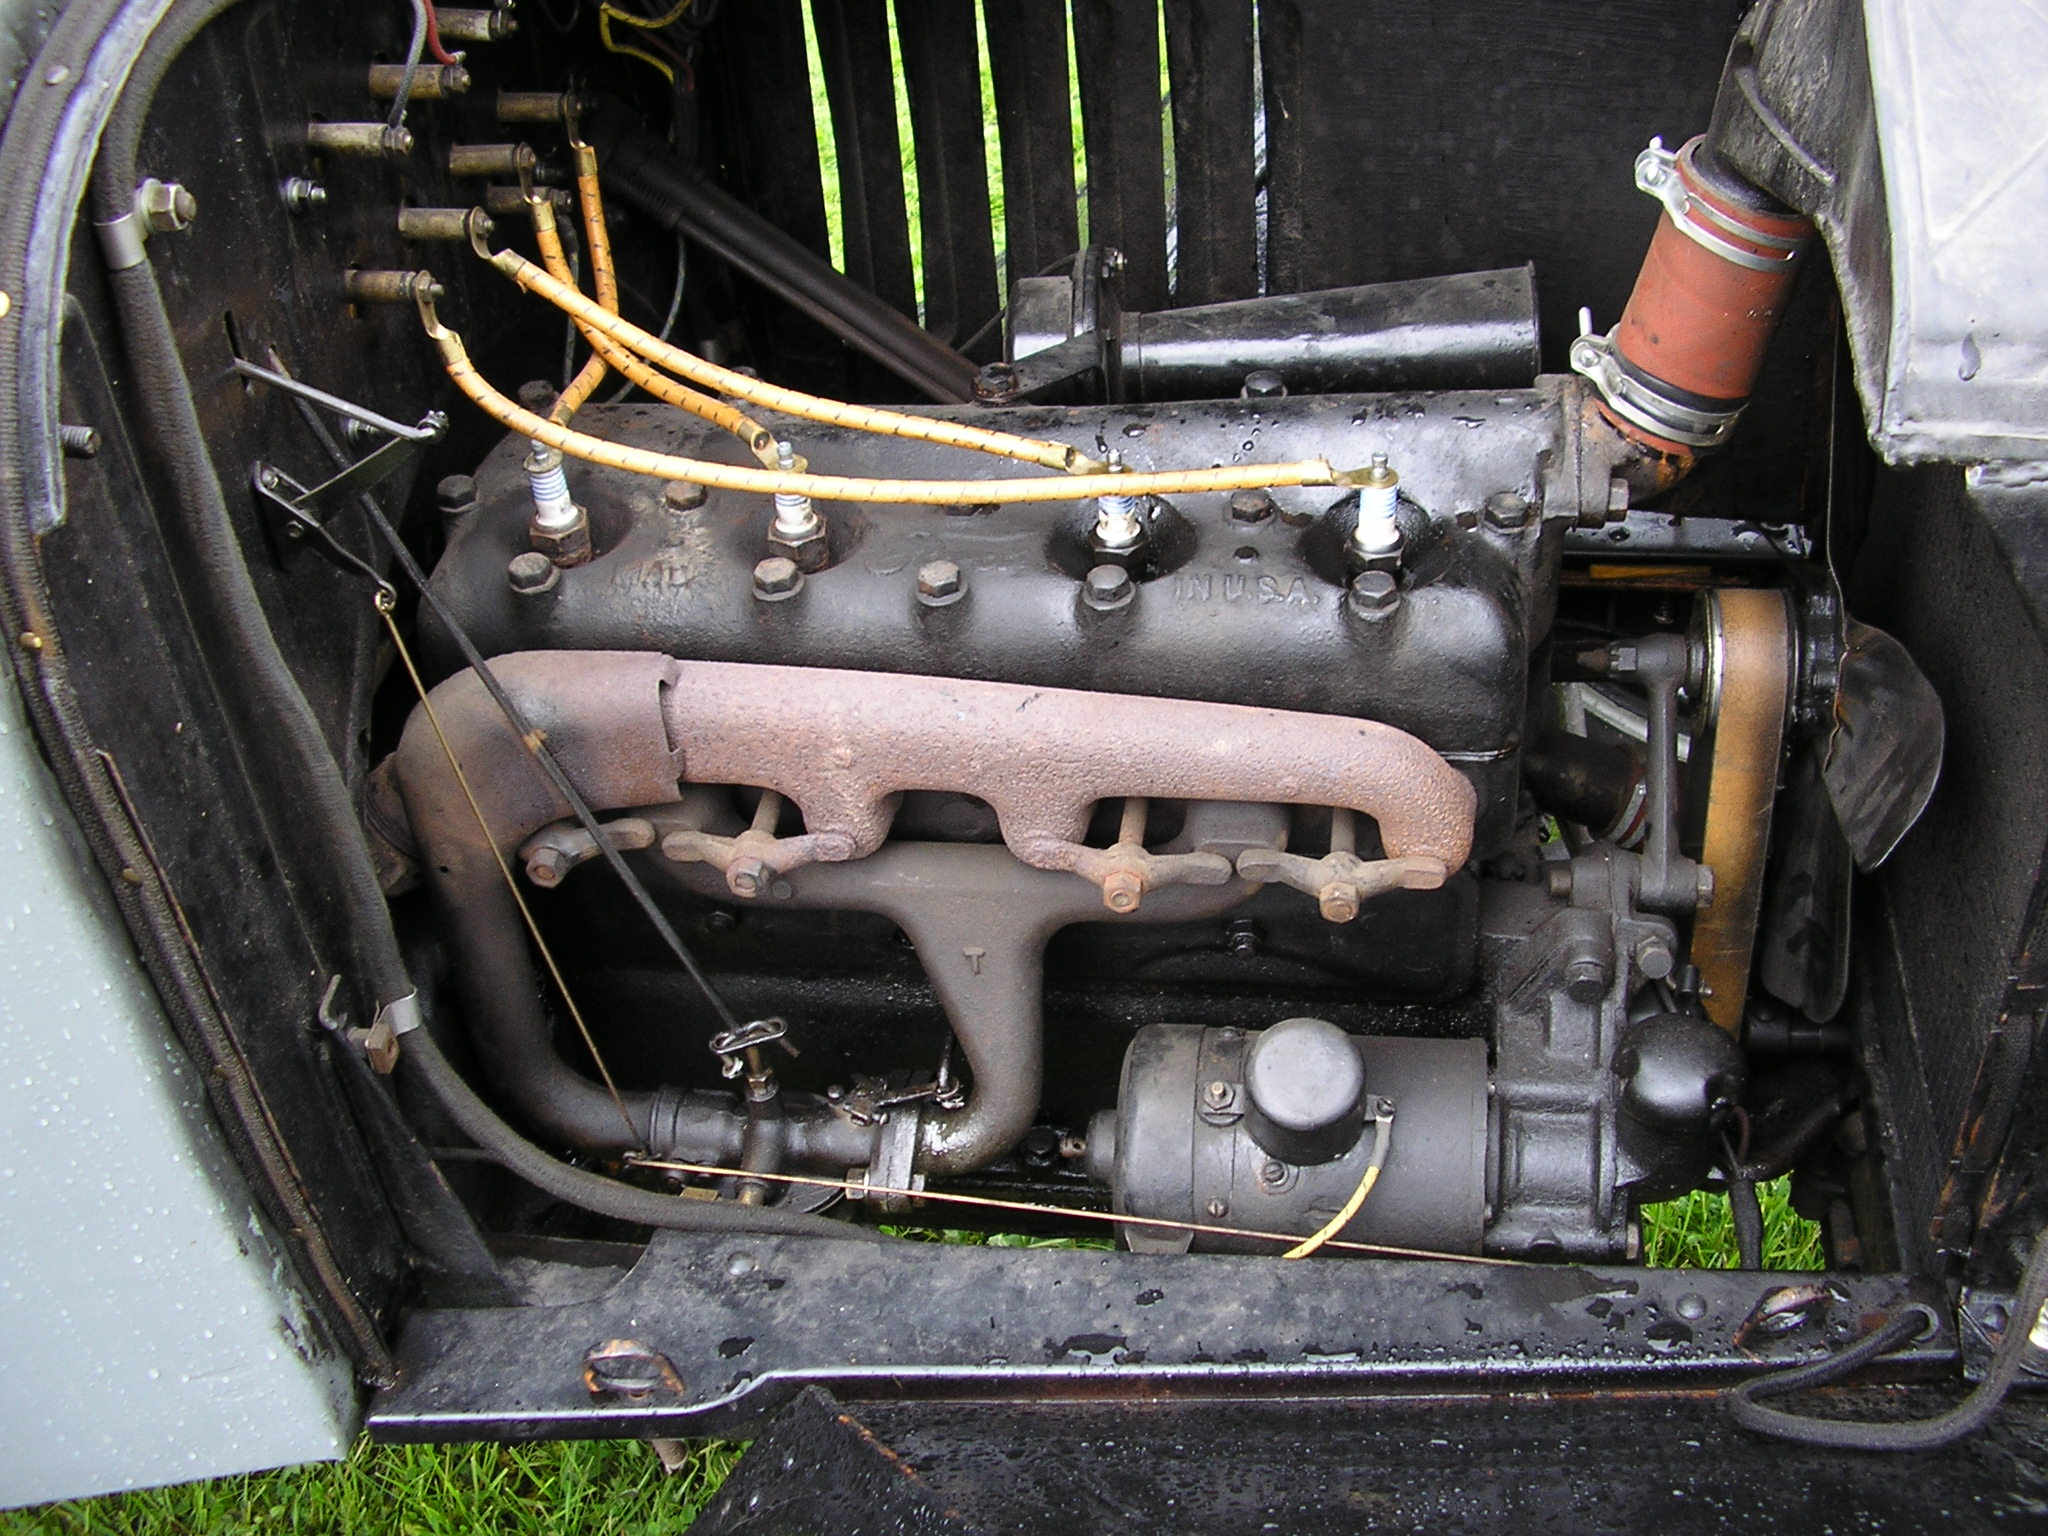 Ford Model T engine - Wikipedia